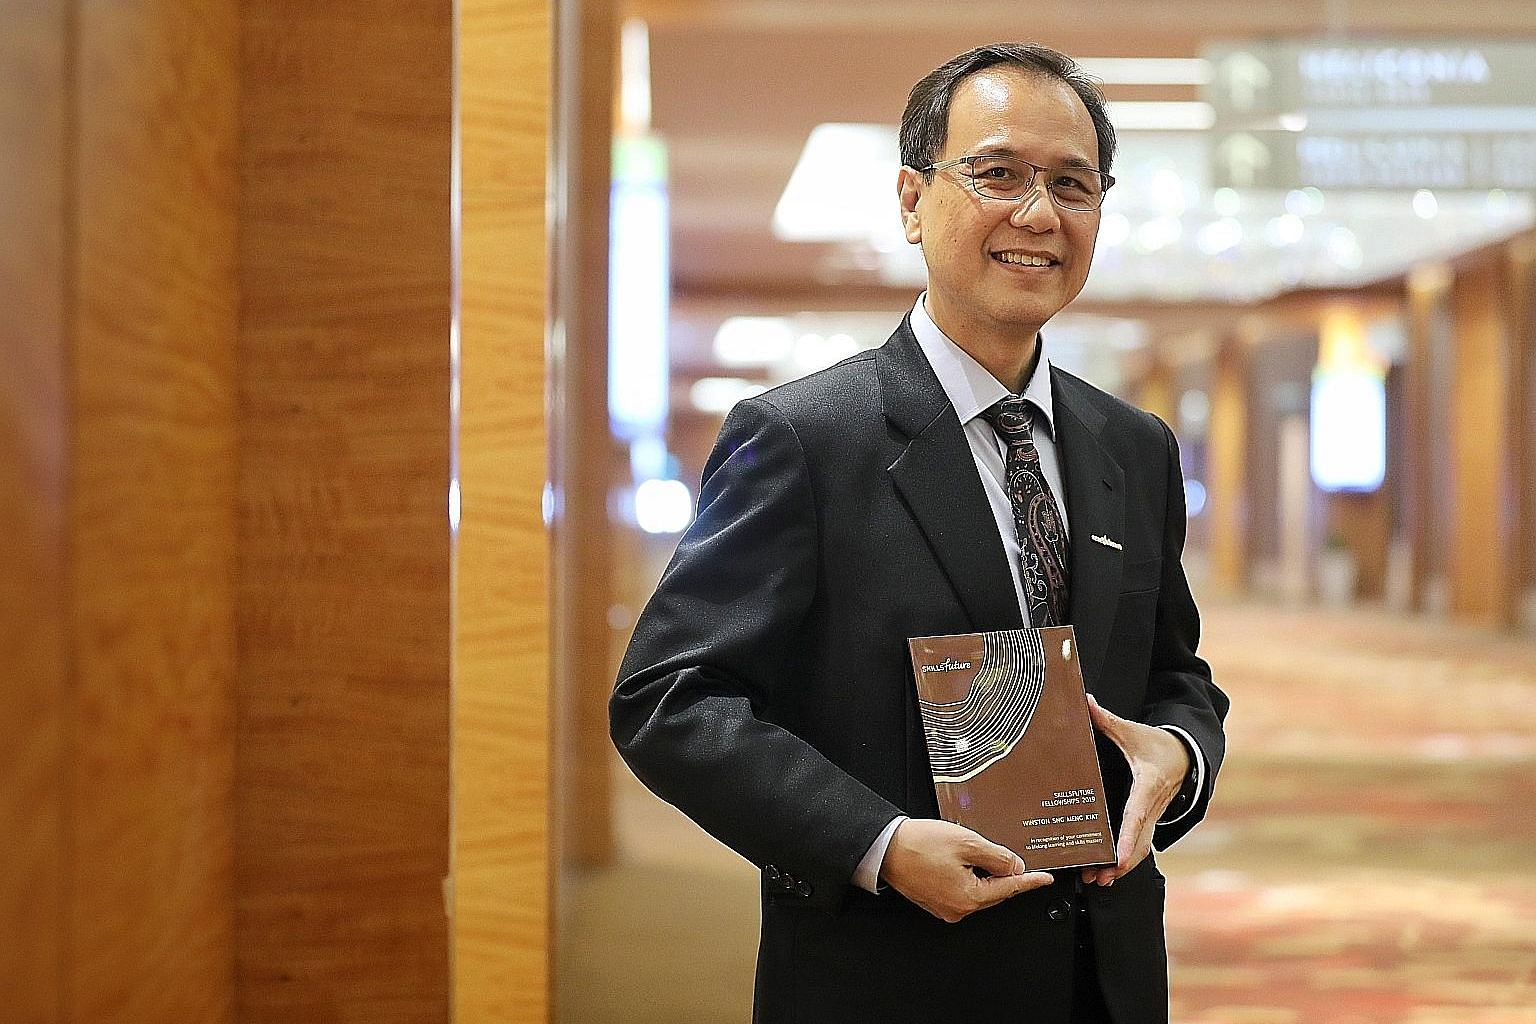 Mr Winston Sng, a senior human resource manager at the United Test and Assembly Centre, with his SkillsFuture Fellowships award at the SkillsFuture Fellowships and SkillsFuture Employer Awards ceremony at Marina Bay Sands yesterday.